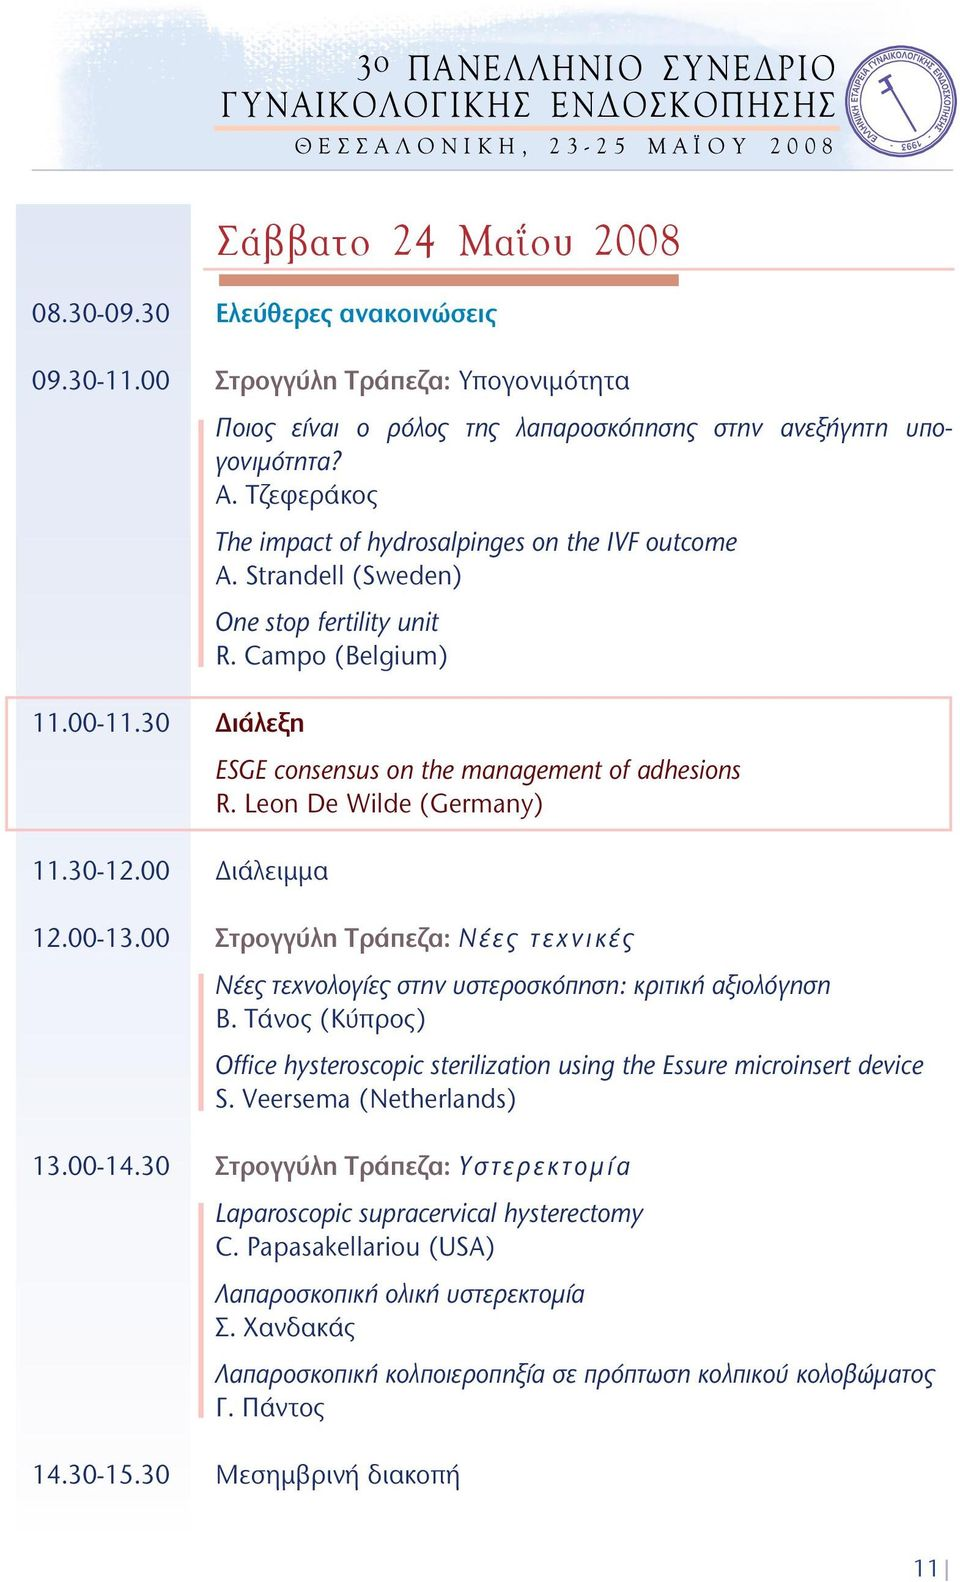 Τζεφεράκος The impact of hydrosalpinges on the IVF outcome A. Strandell (Sweden) One stop fertility unit R. Campo (Belgium) ESGE consensus on the management of adhesions R. Leon De Wilde (Germany) 12.